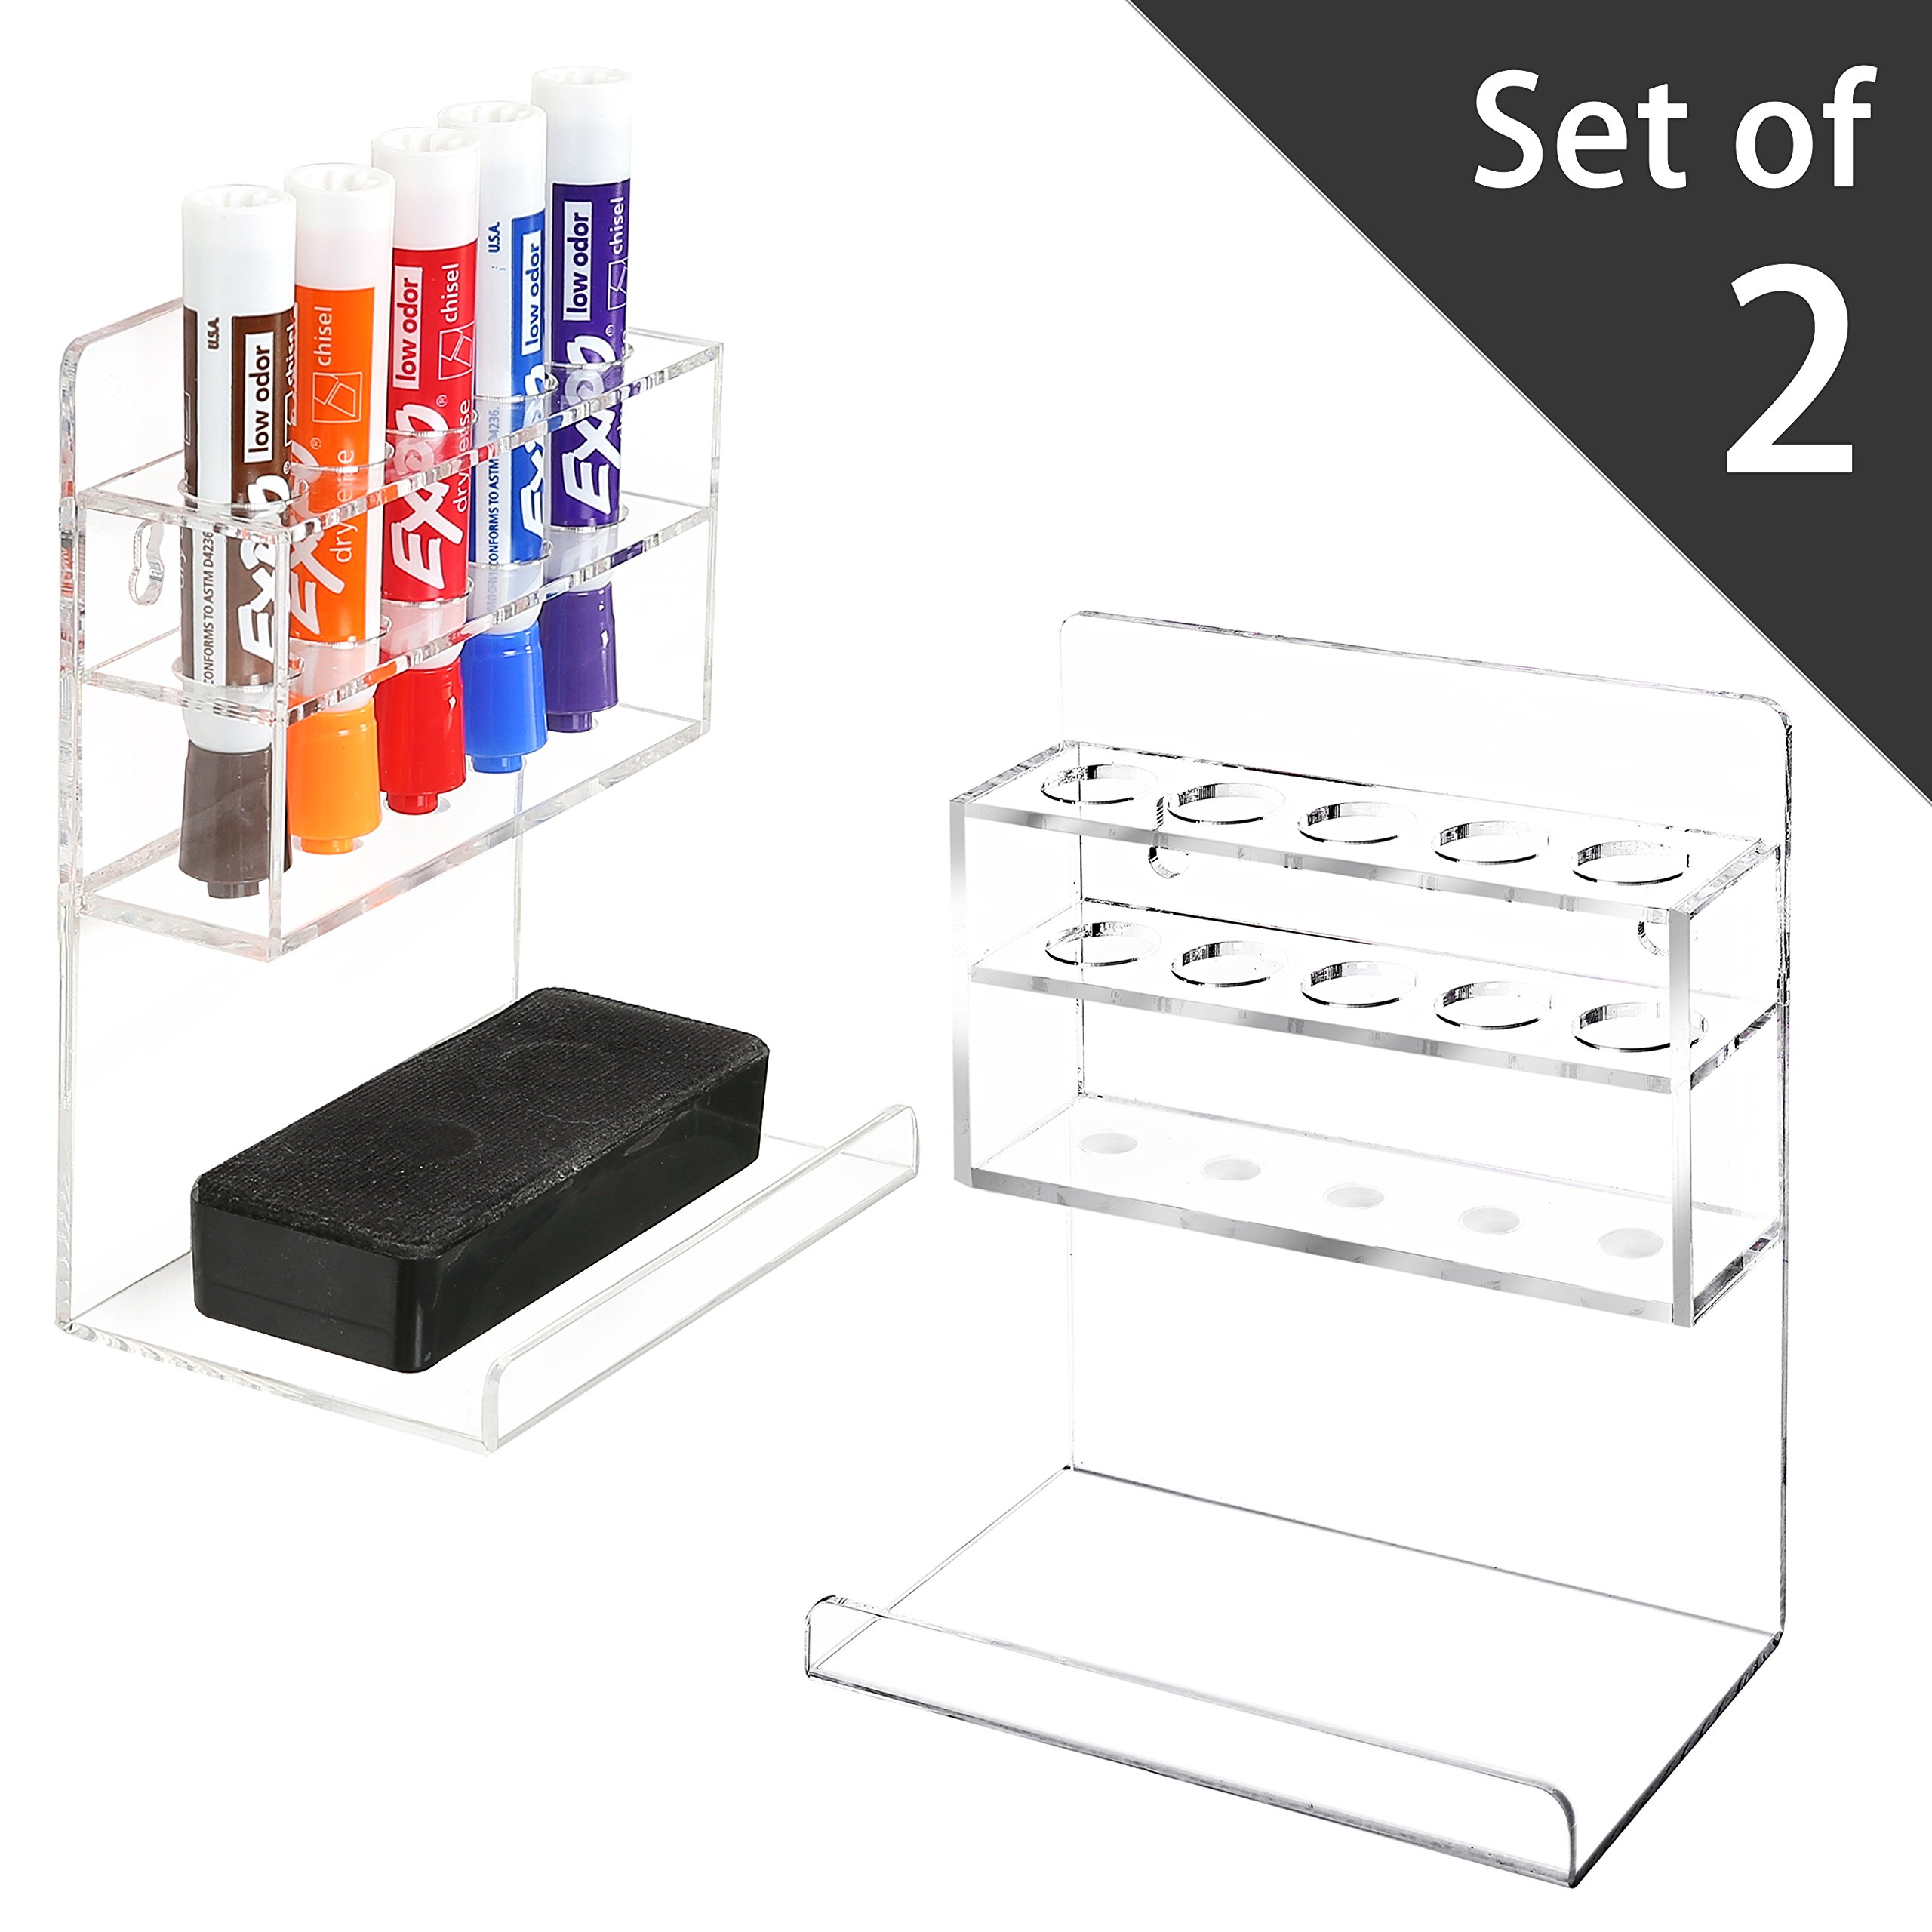 MyGift Clear Acrylic Wall Mounted 5 Slot Dry Erase Marker and Eraser Organizer Holder Rack, Set of 2